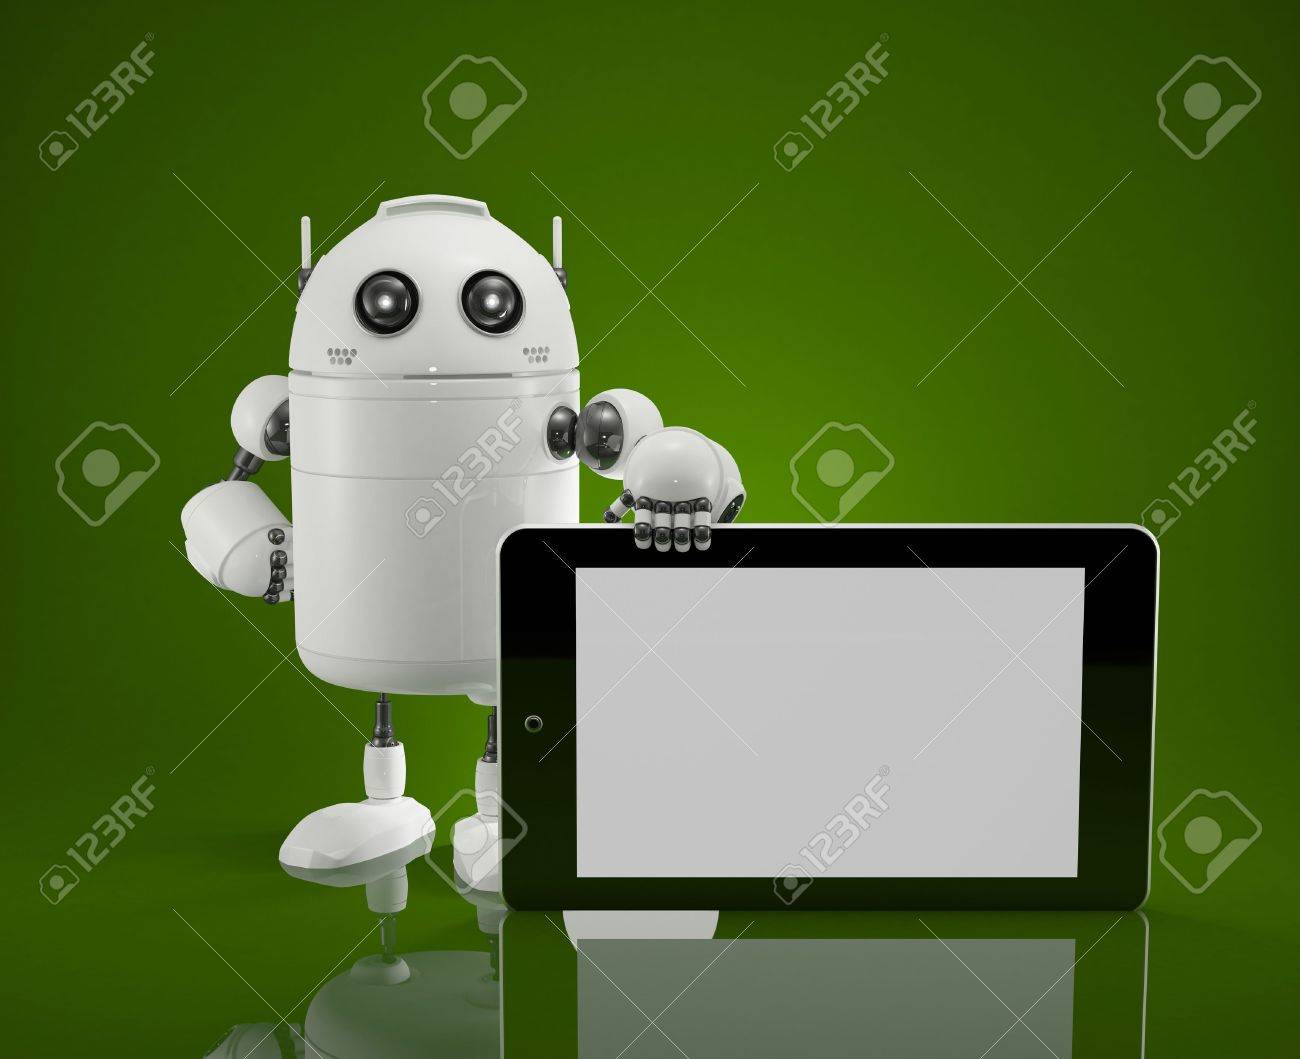 Robot with blanc screen tablet computer Stock Photo - 19495881